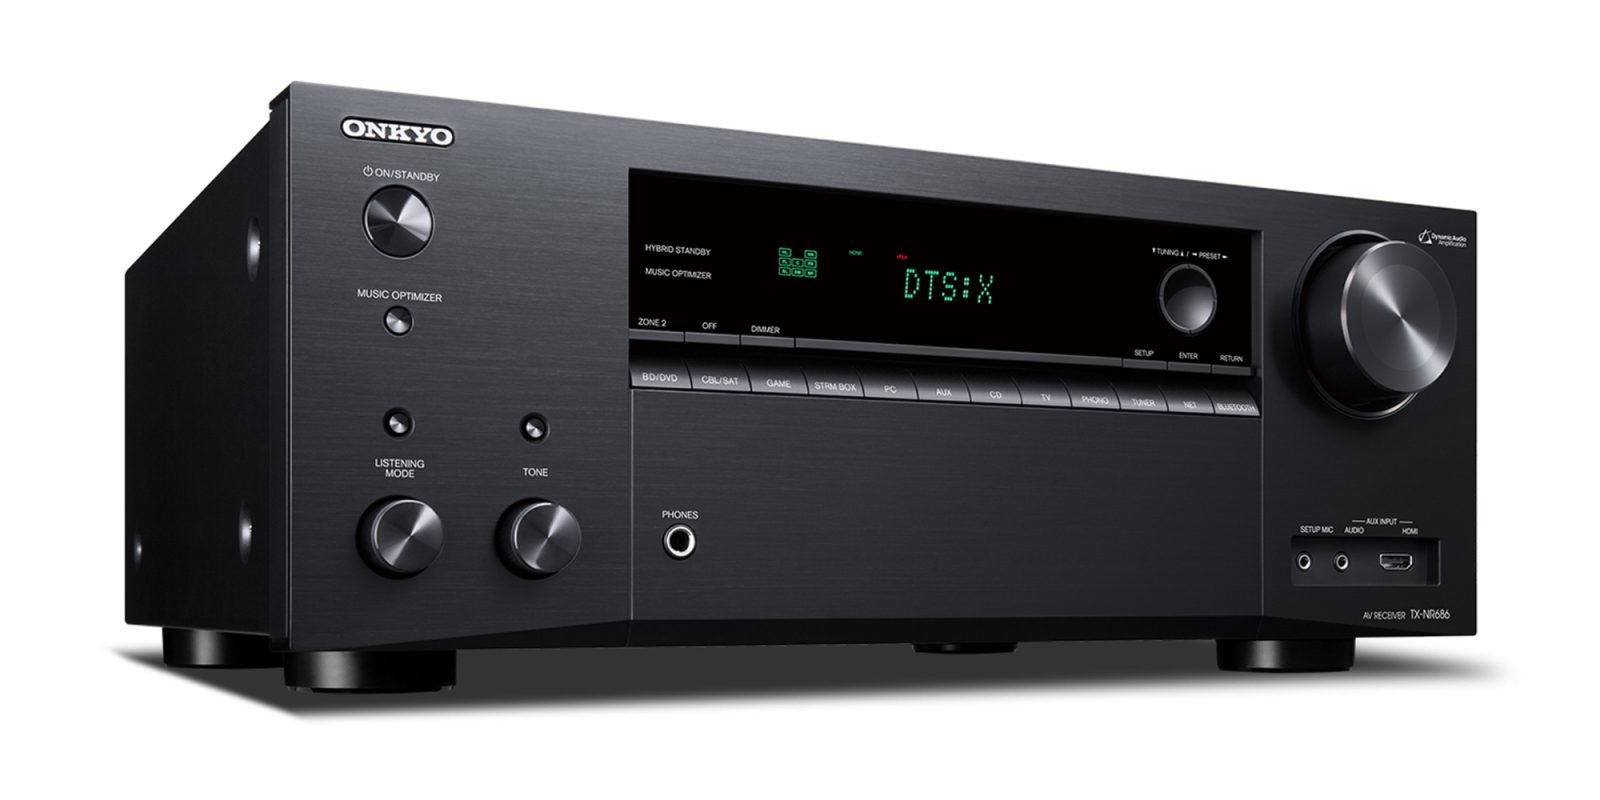 AirPlay 2, Atmos, and 4K60 headline Onkyo's 7.2-Ch. Receiver: $300 ($100 off)